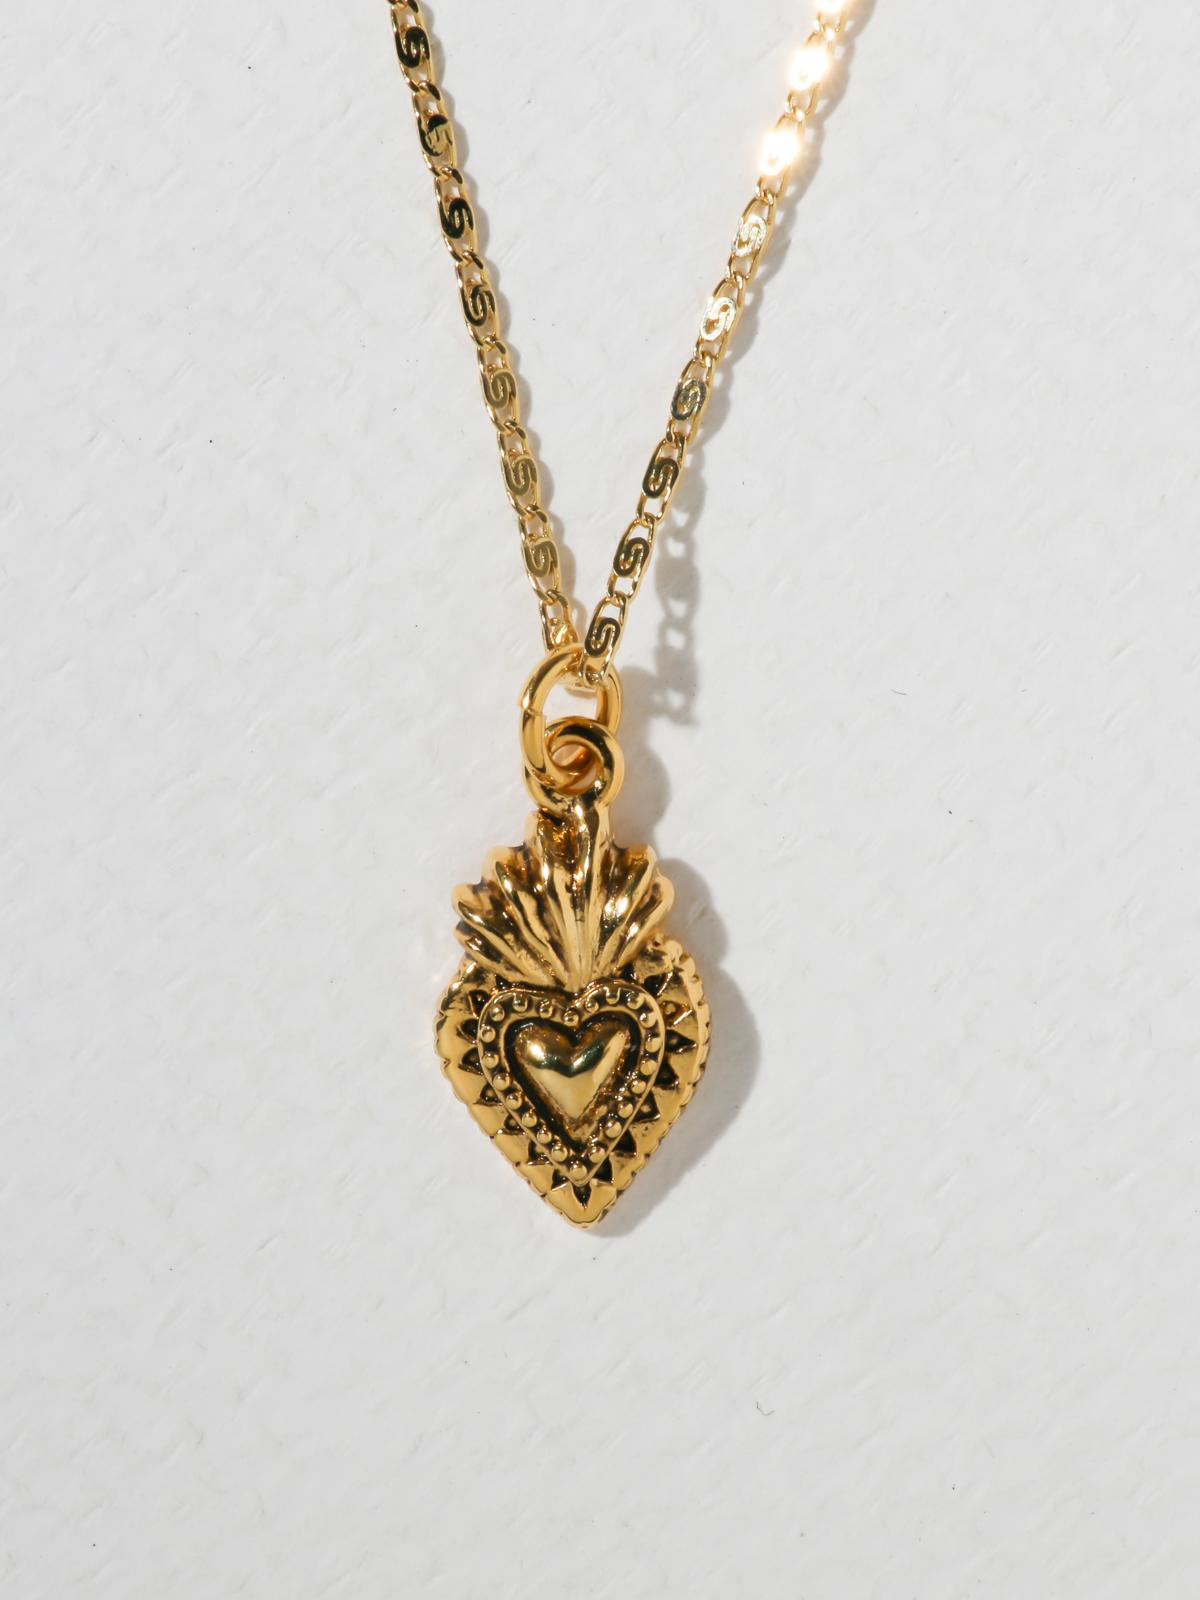 The Sacred Heart Necklace